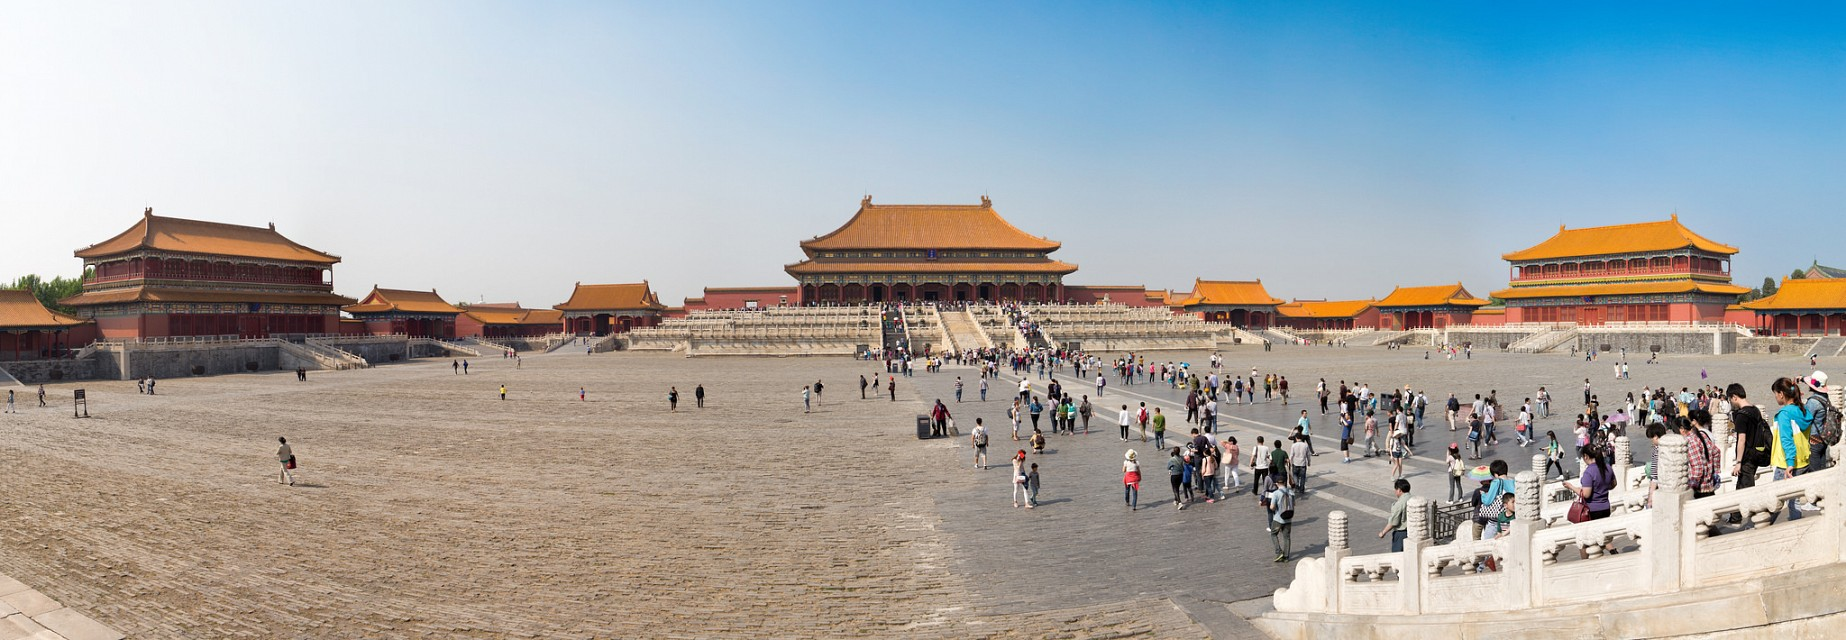 Hall of Supreme Harmony - Forbidden City